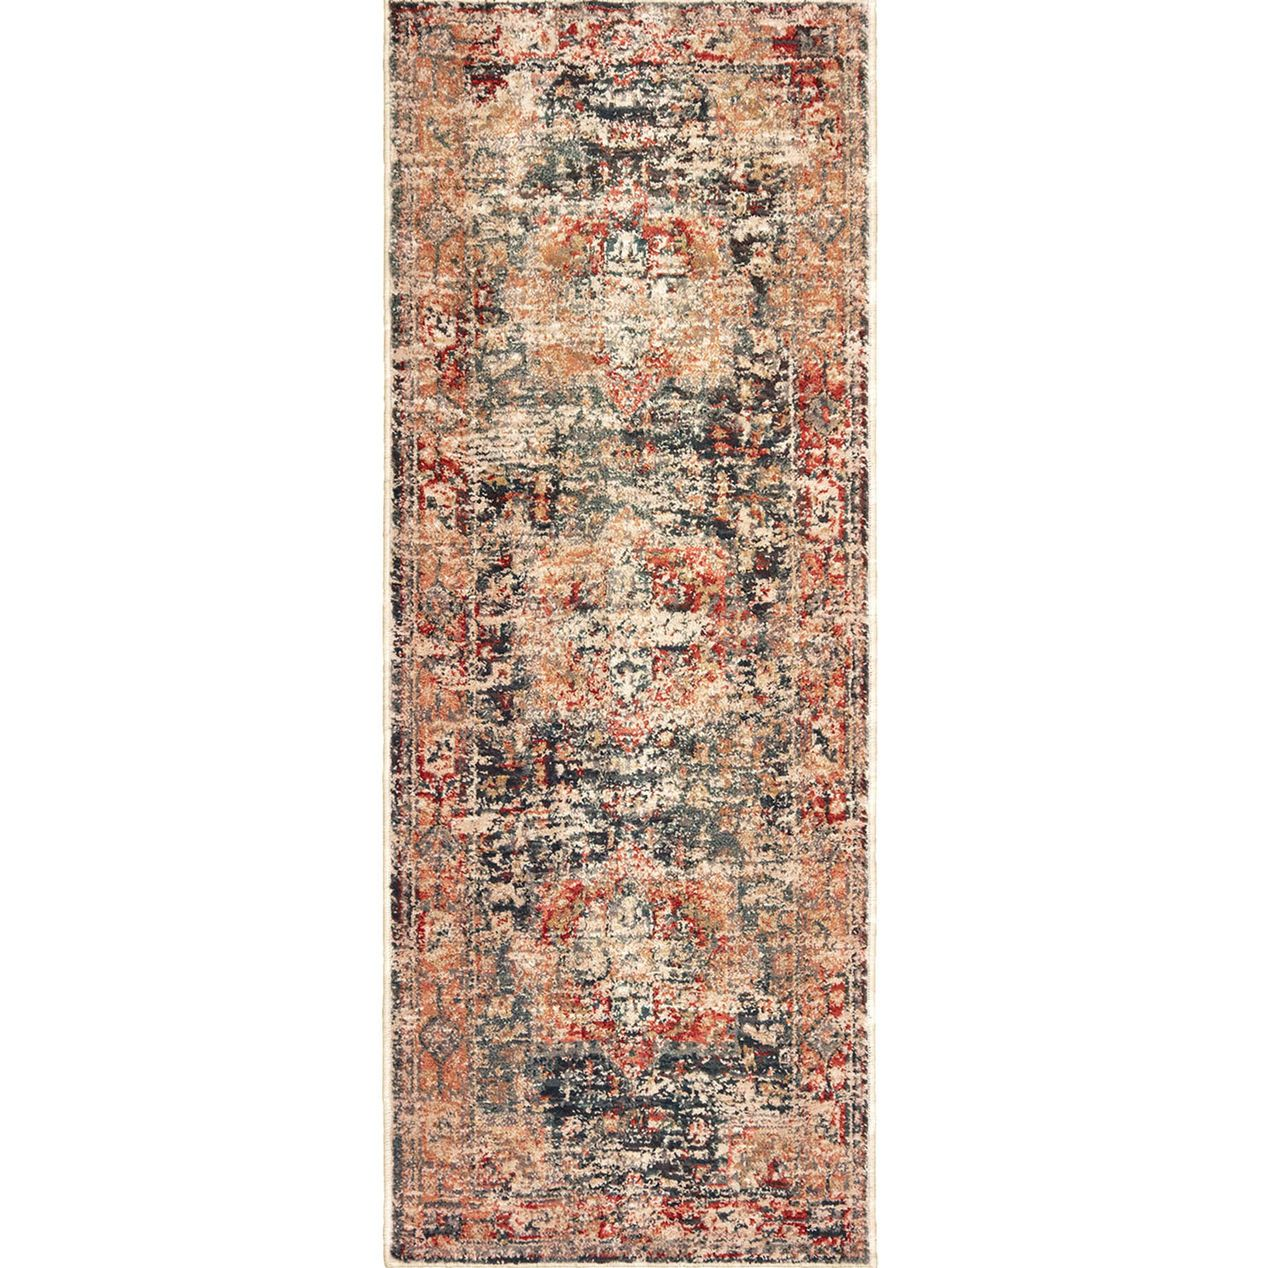 A412 Rochester Multicolor Rug 2 2 X 6 At Home Rugs Clearance Rugs Affordable Rugs [ 1268 x 1268 Pixel ]